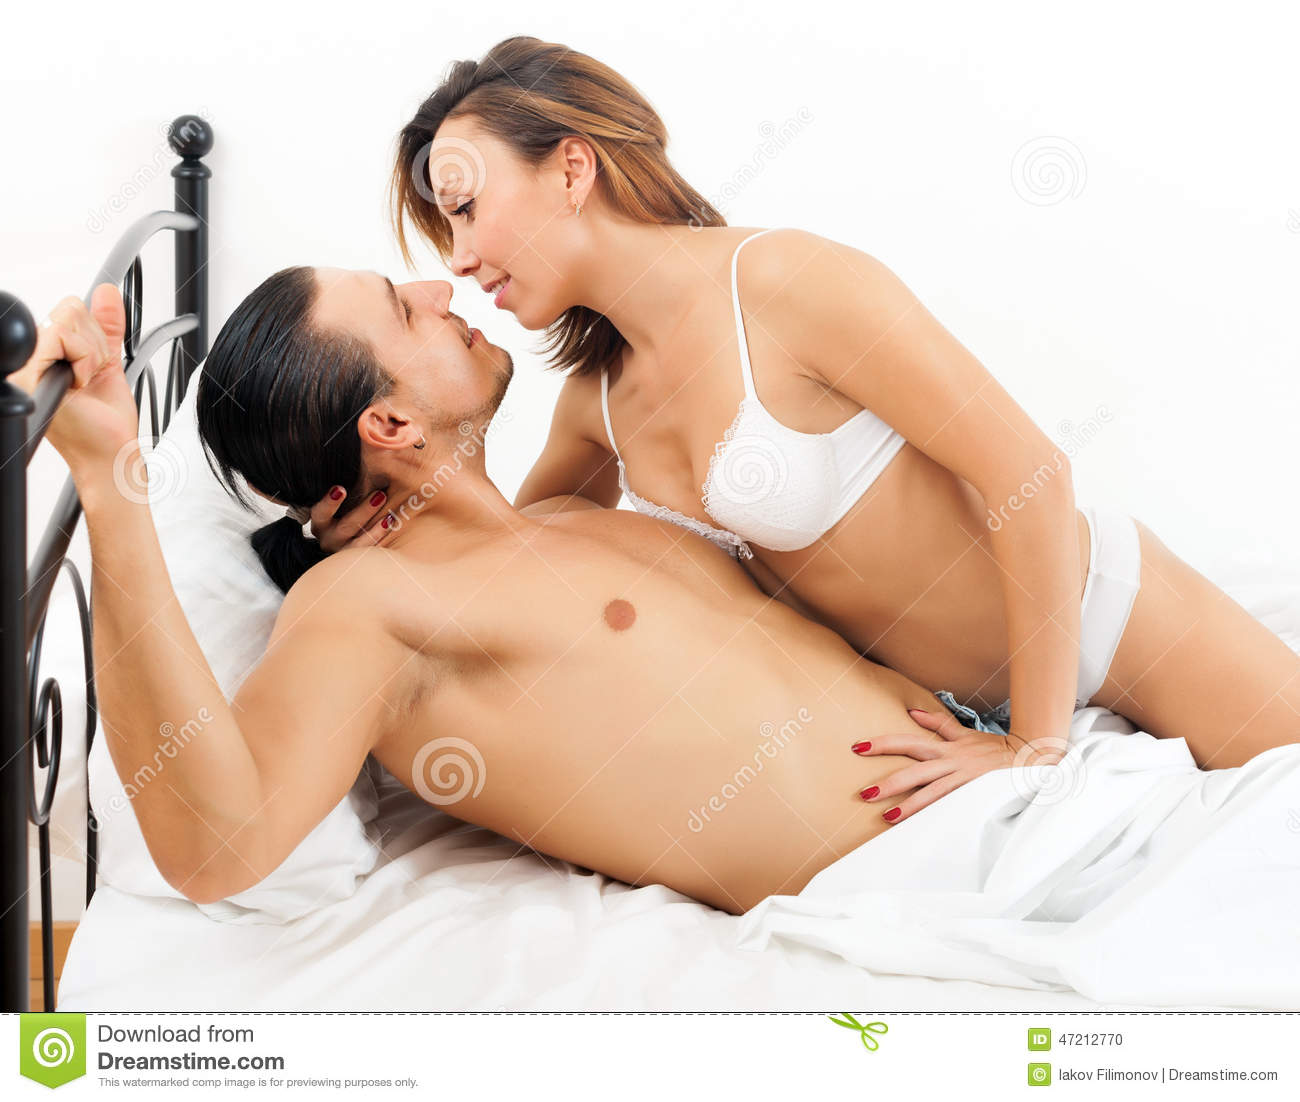 Women having sex in the bed